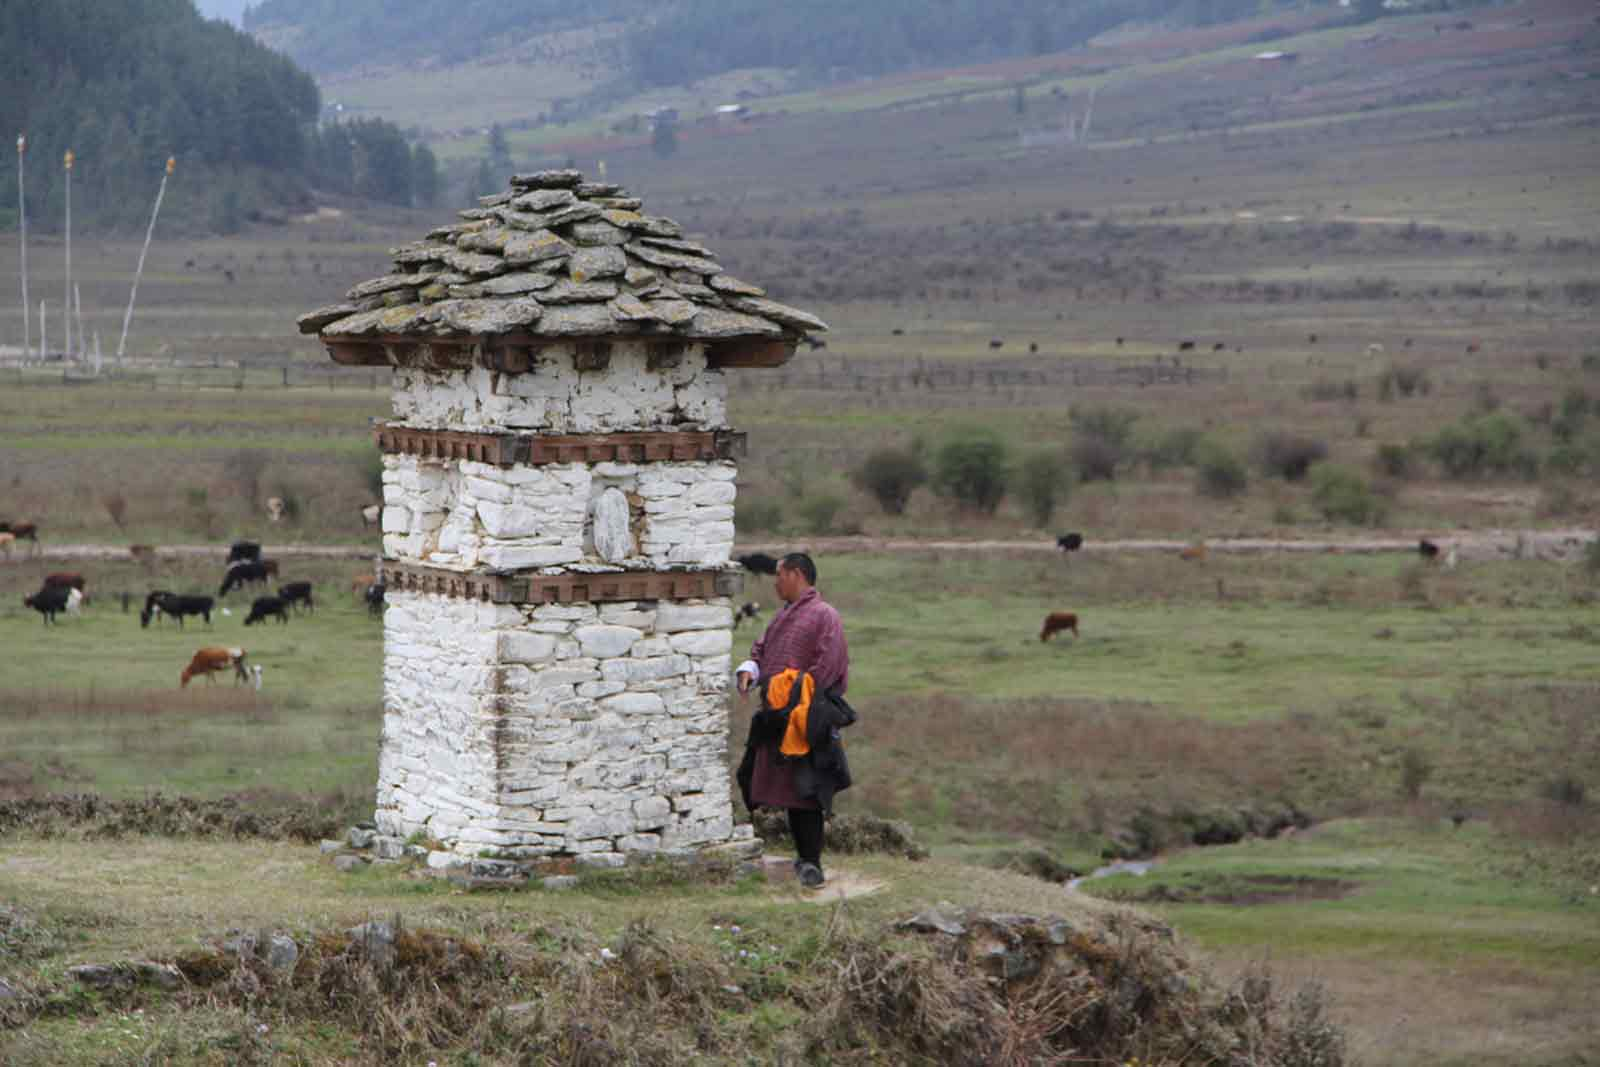 BHUTAN: A MONK AND A CARPENTER